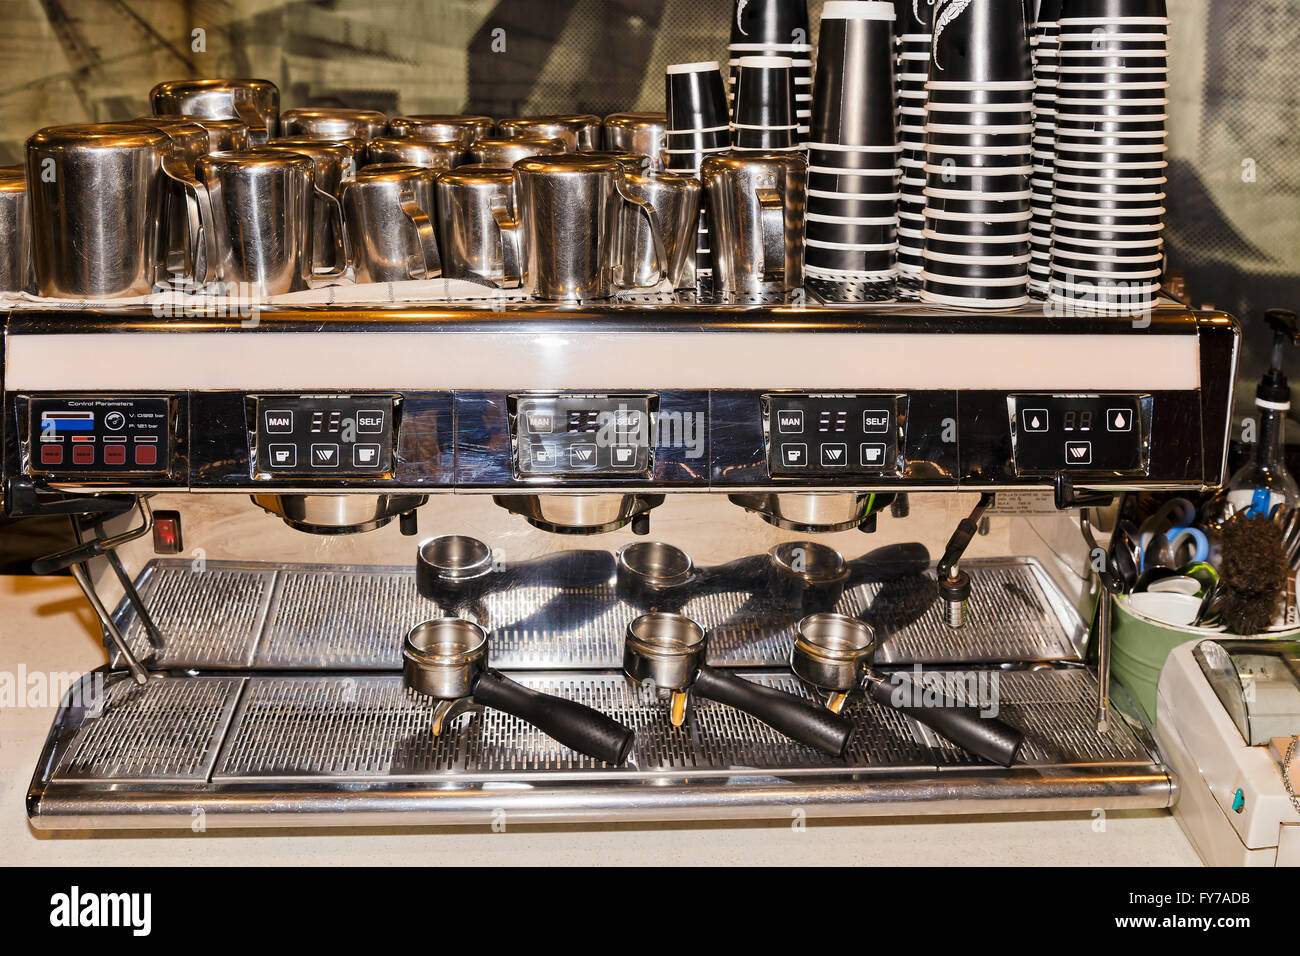 Front of industrial barista coffee machine with portafilters , cups, pots and handlers ready to make ground coffee. - Stock Image